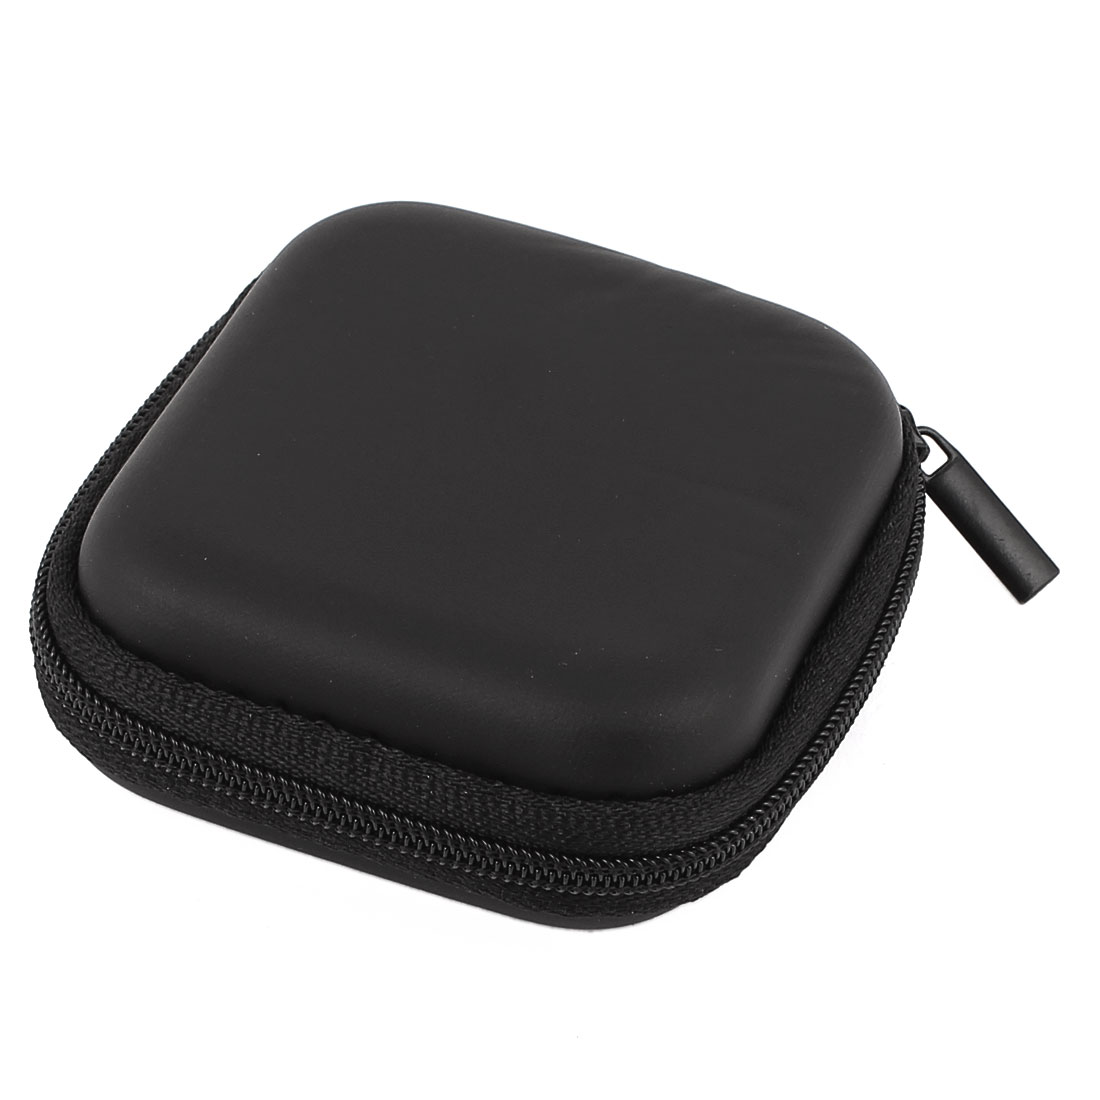 Earphone Cellphone Headphone Headset Earbuds Square Carrying Hold Case Pouch Storage Bag Box Pocket Black